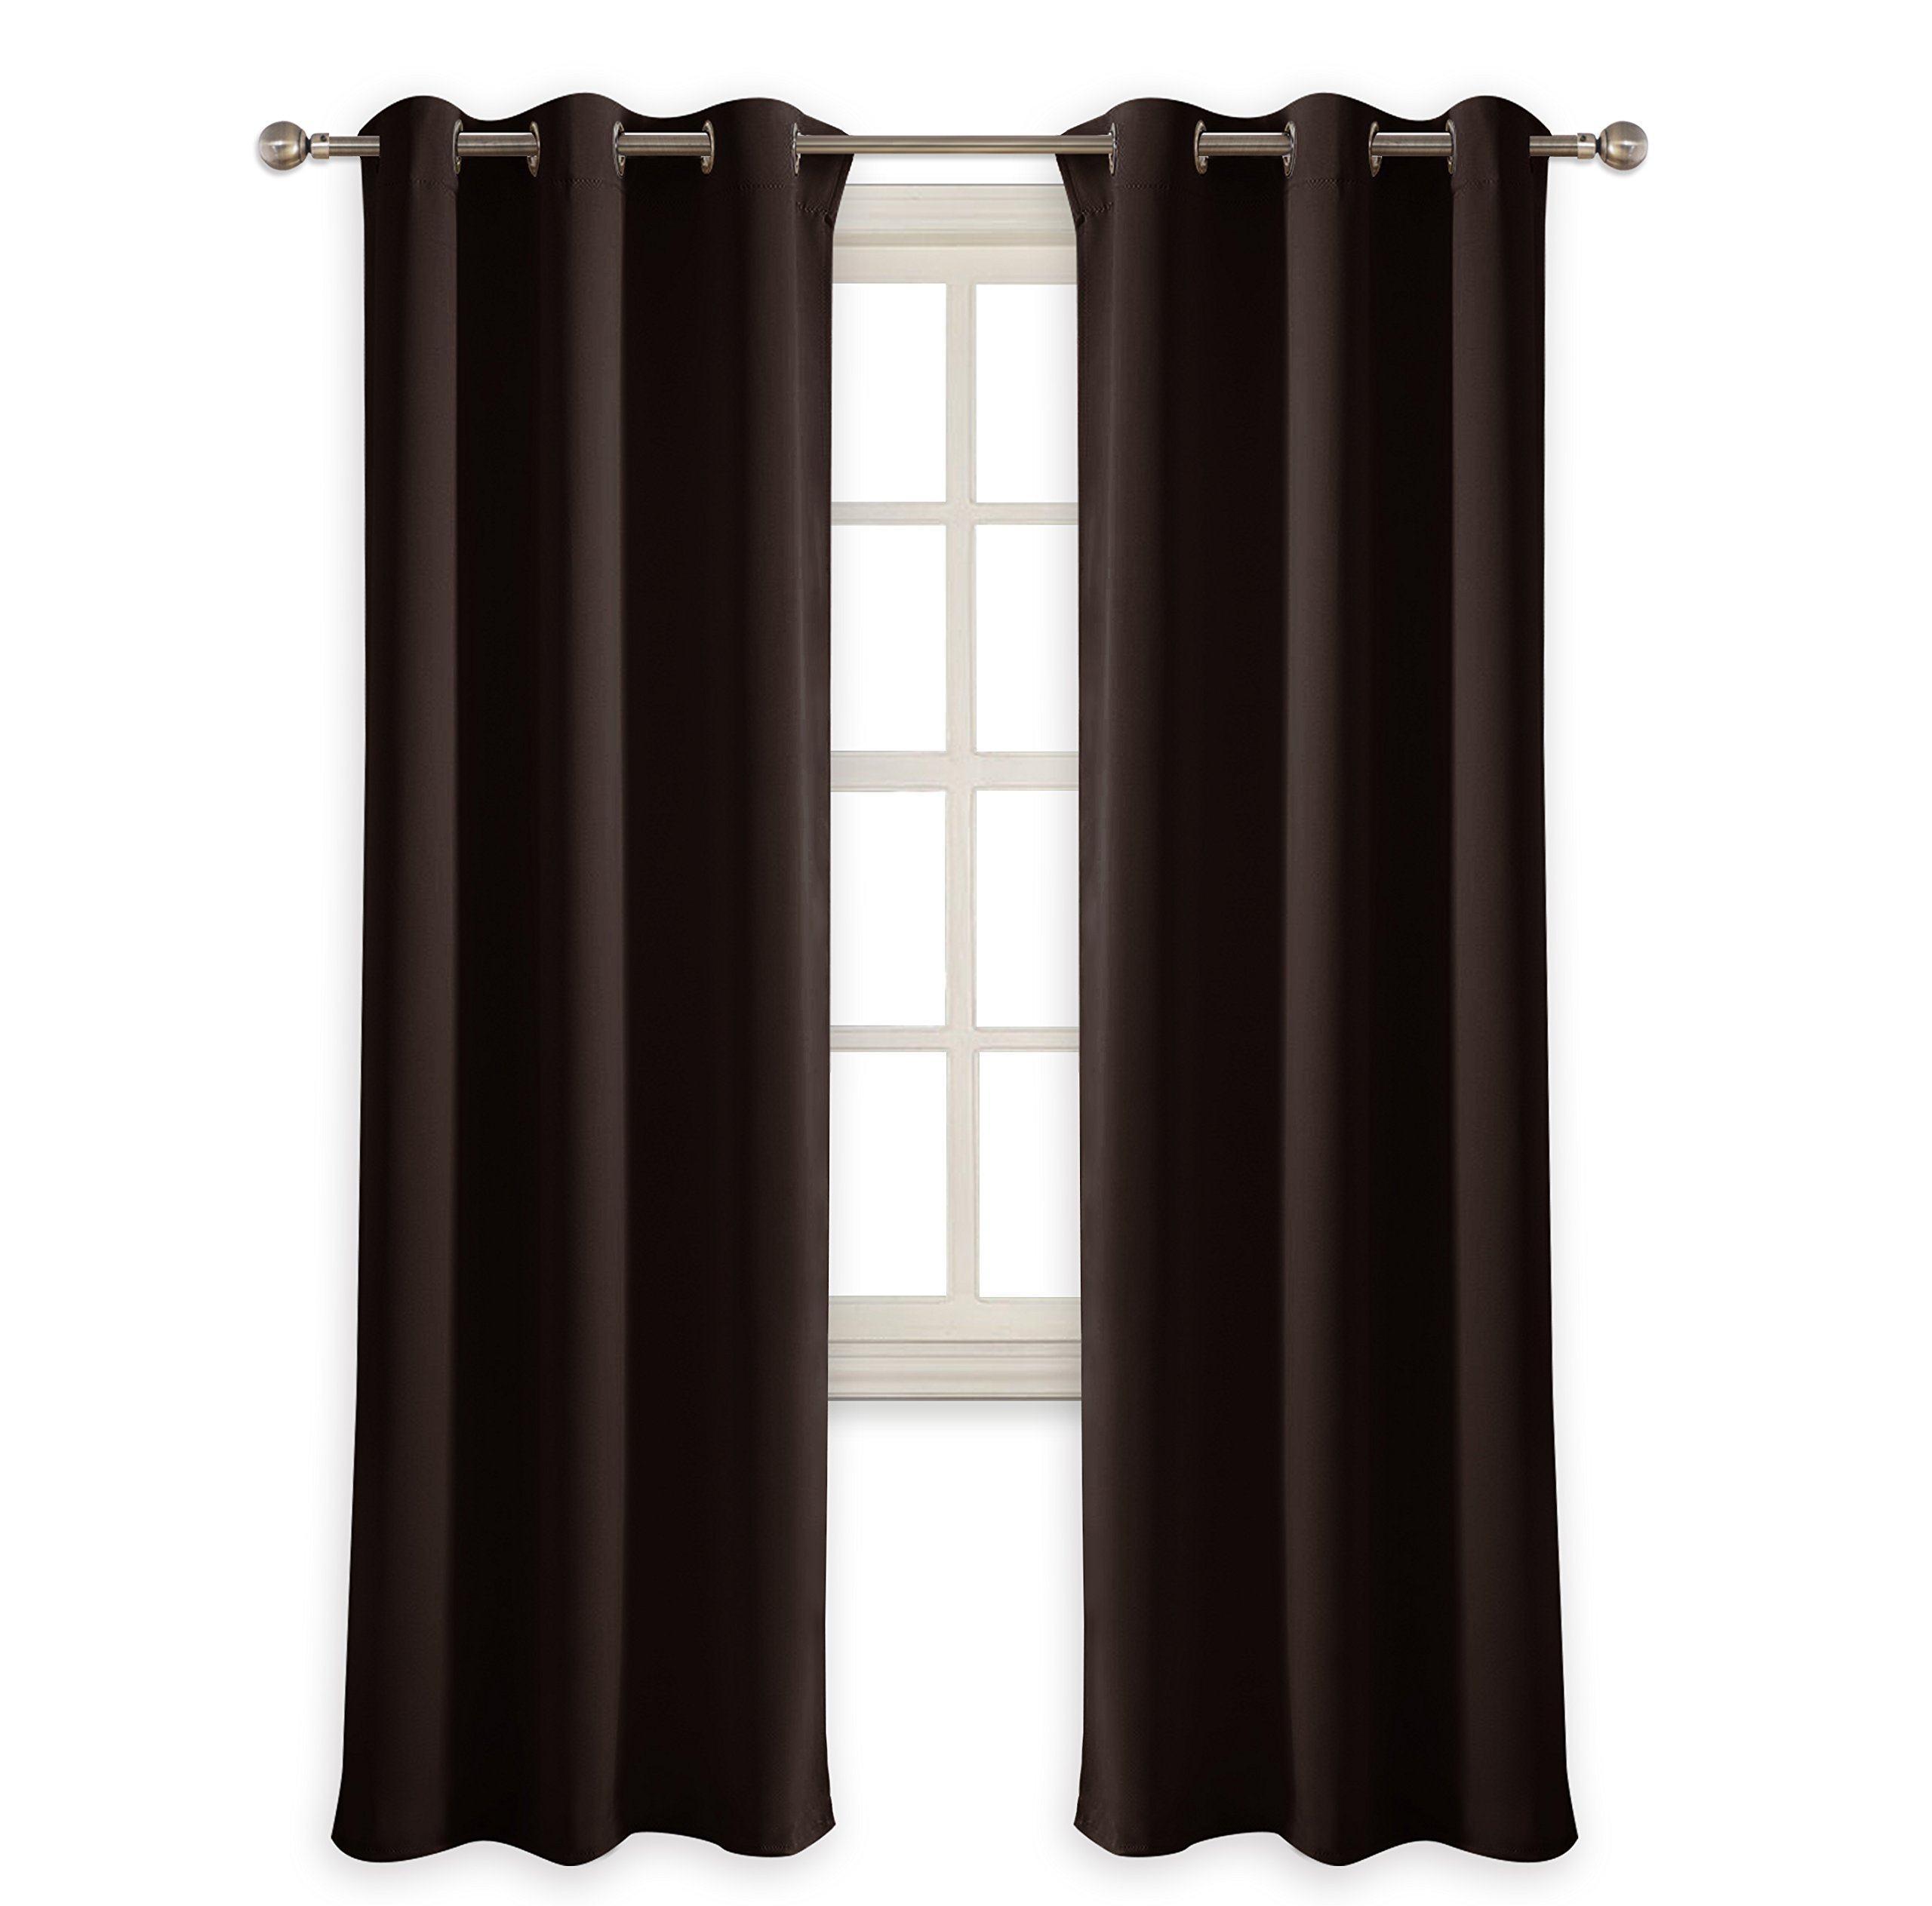 PONY DANCE Blackout Curtain Panels - Window Treatments Room Darkening Thermal Insulated Drapery with Grommets for Living Room for Home Decoration, W 42'' x L 72'', Chocolate Brown, 2 Pieces